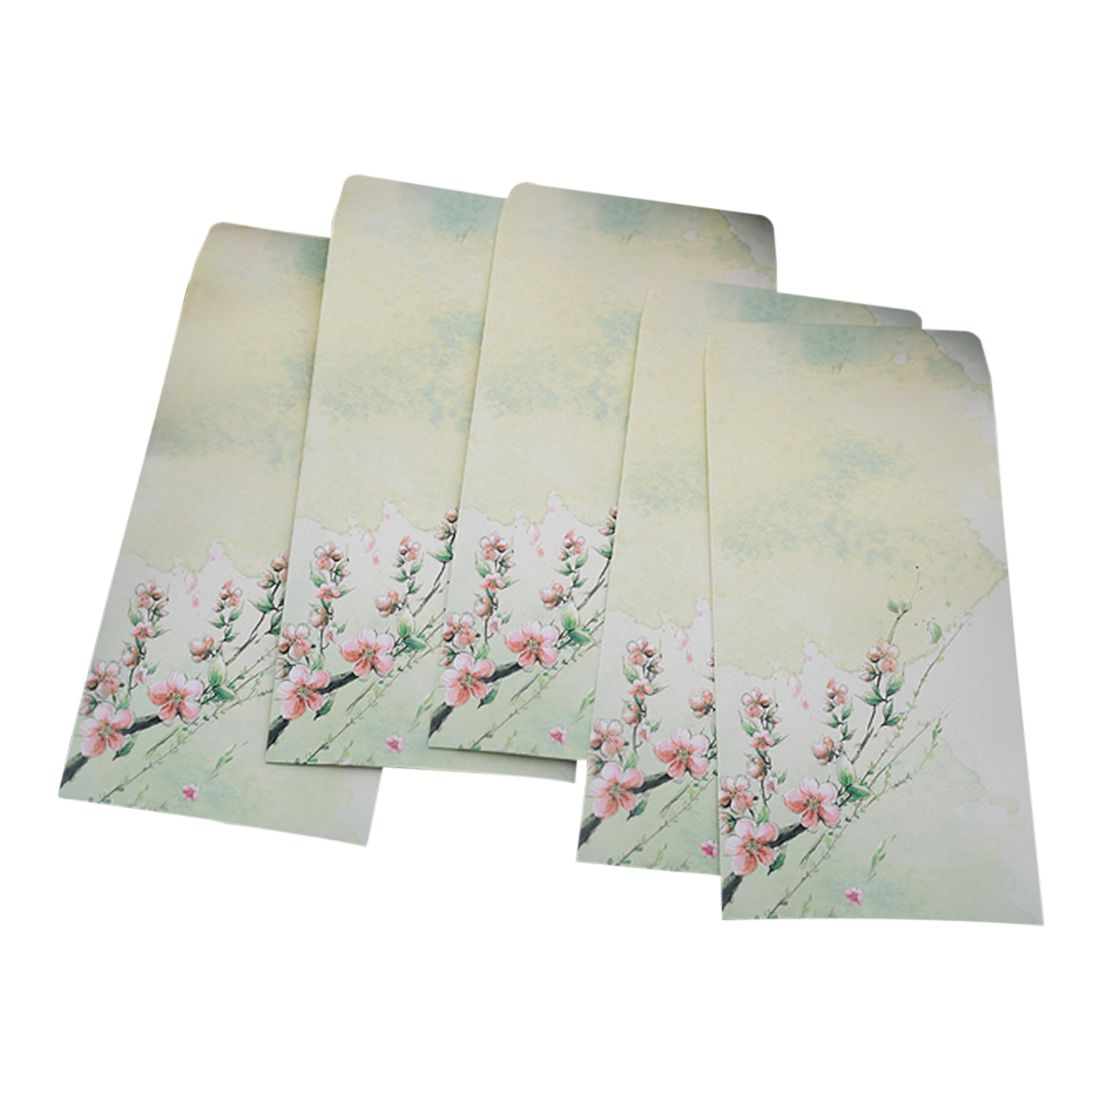 Affordable 10 Pieces Vintage Chinese Style Vintage Craft Paper Envelope For Letter Paper Postcards Peach Blossom